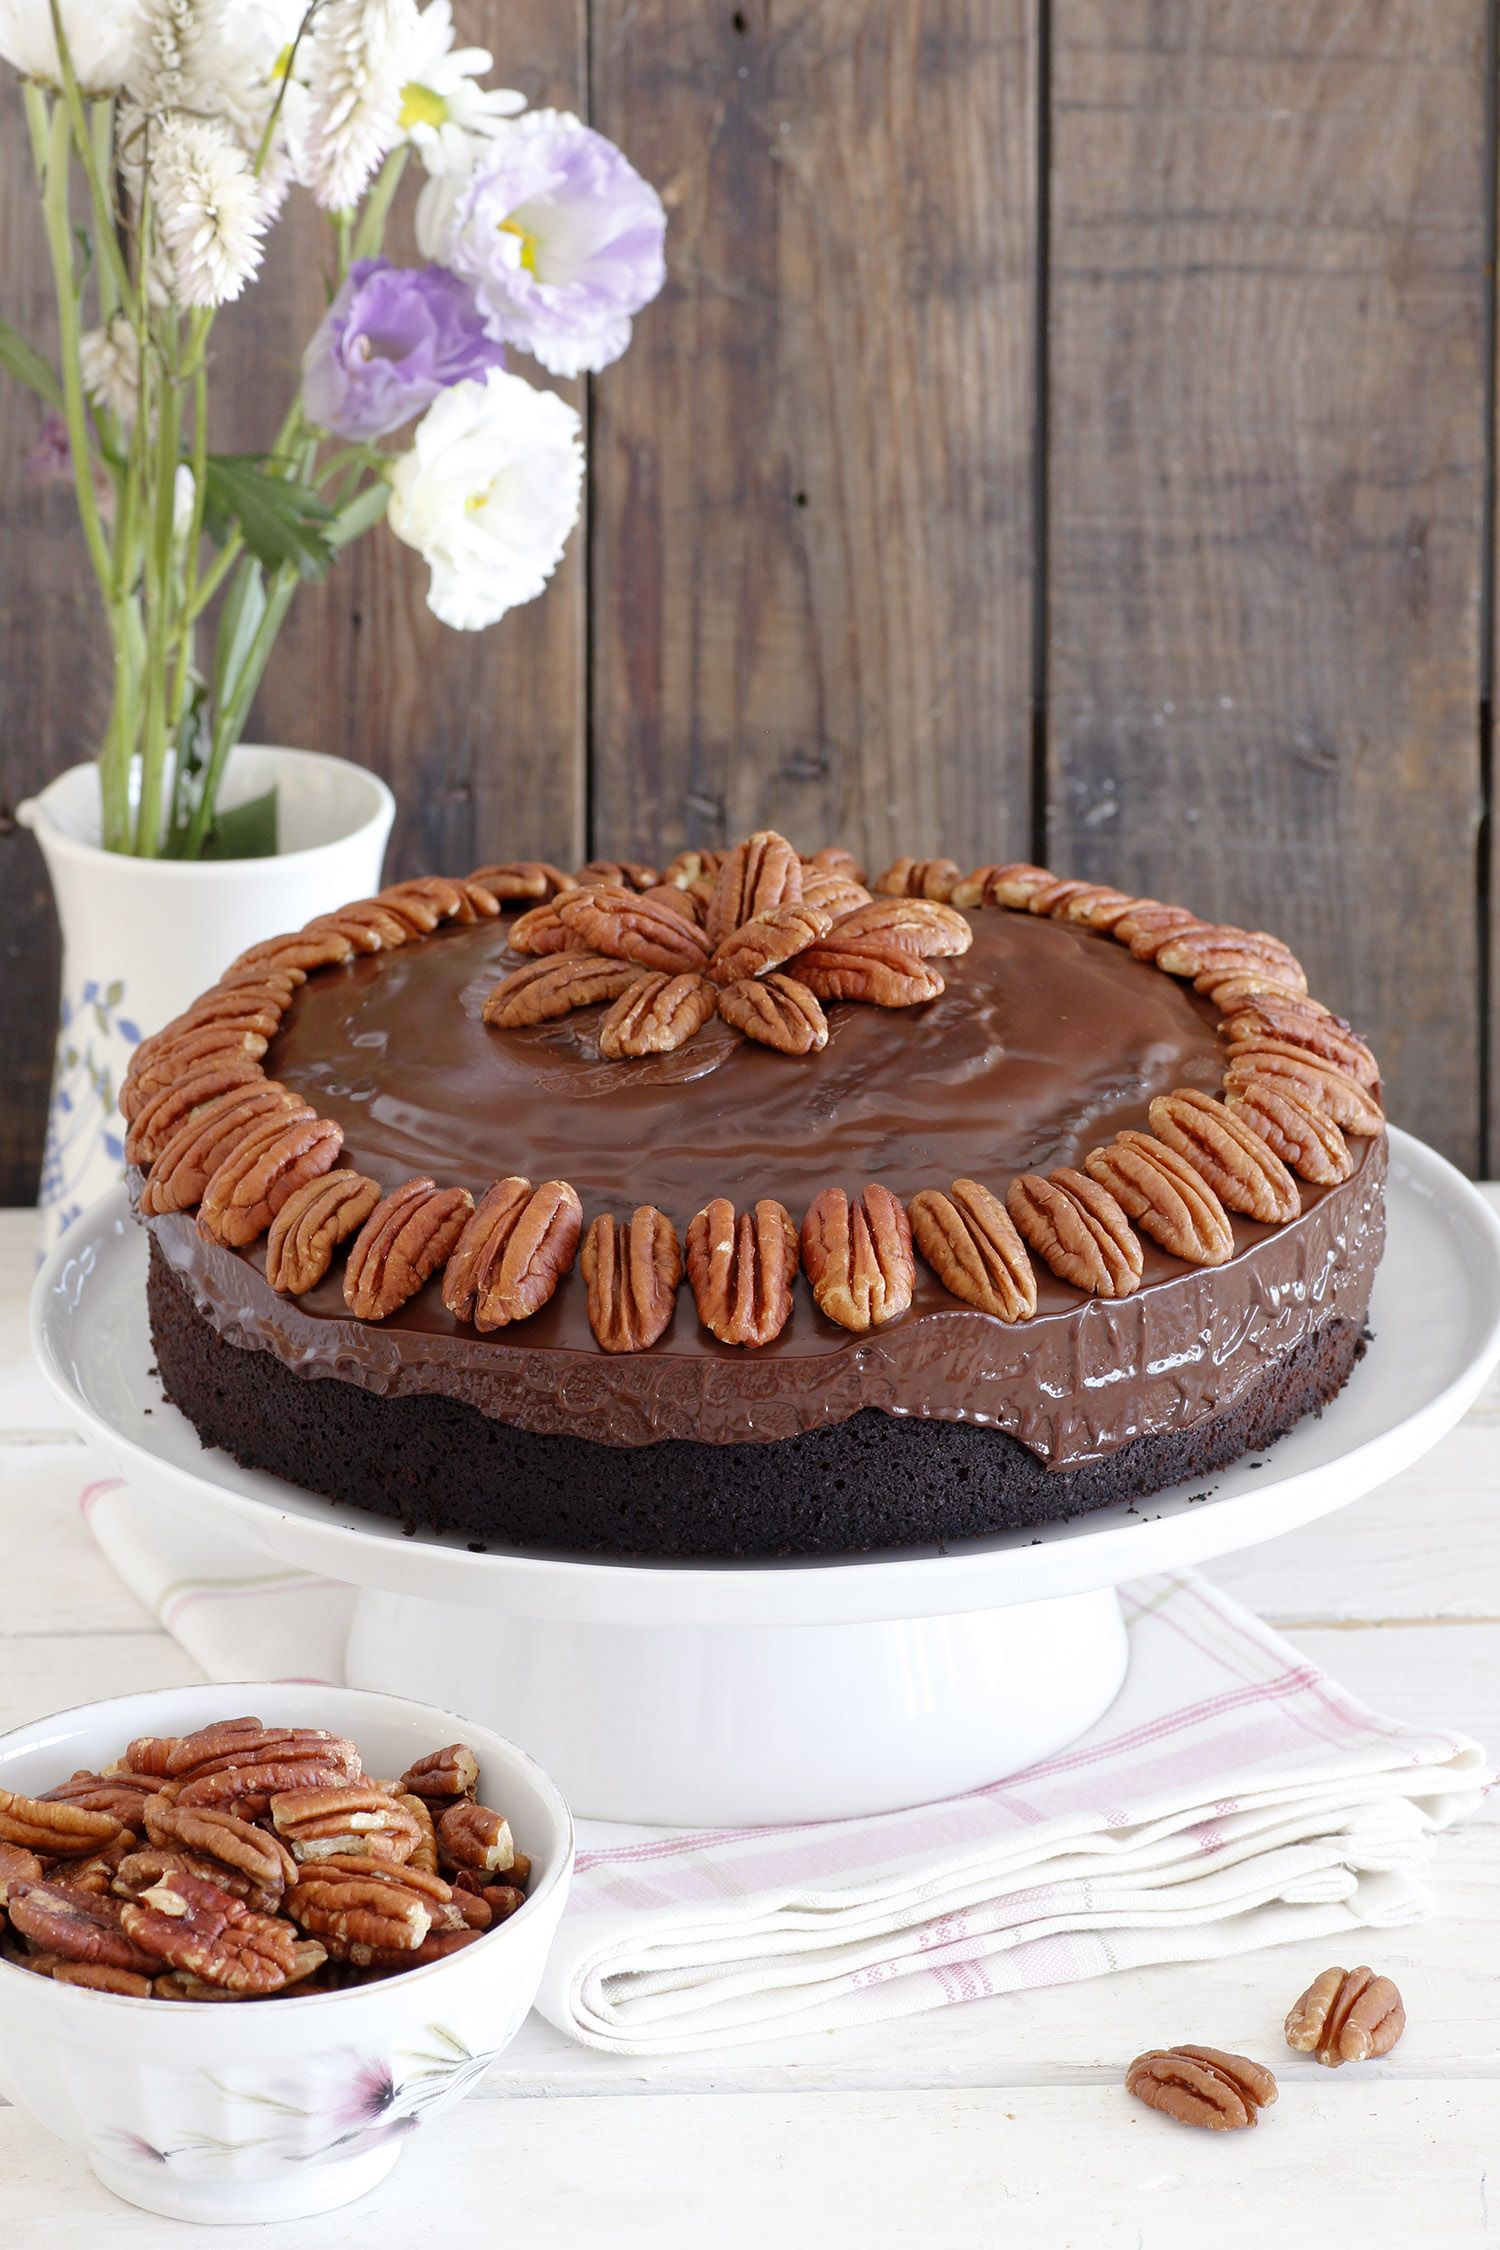 Chocolate Date Cake with Chocolate Frosting and Pecans